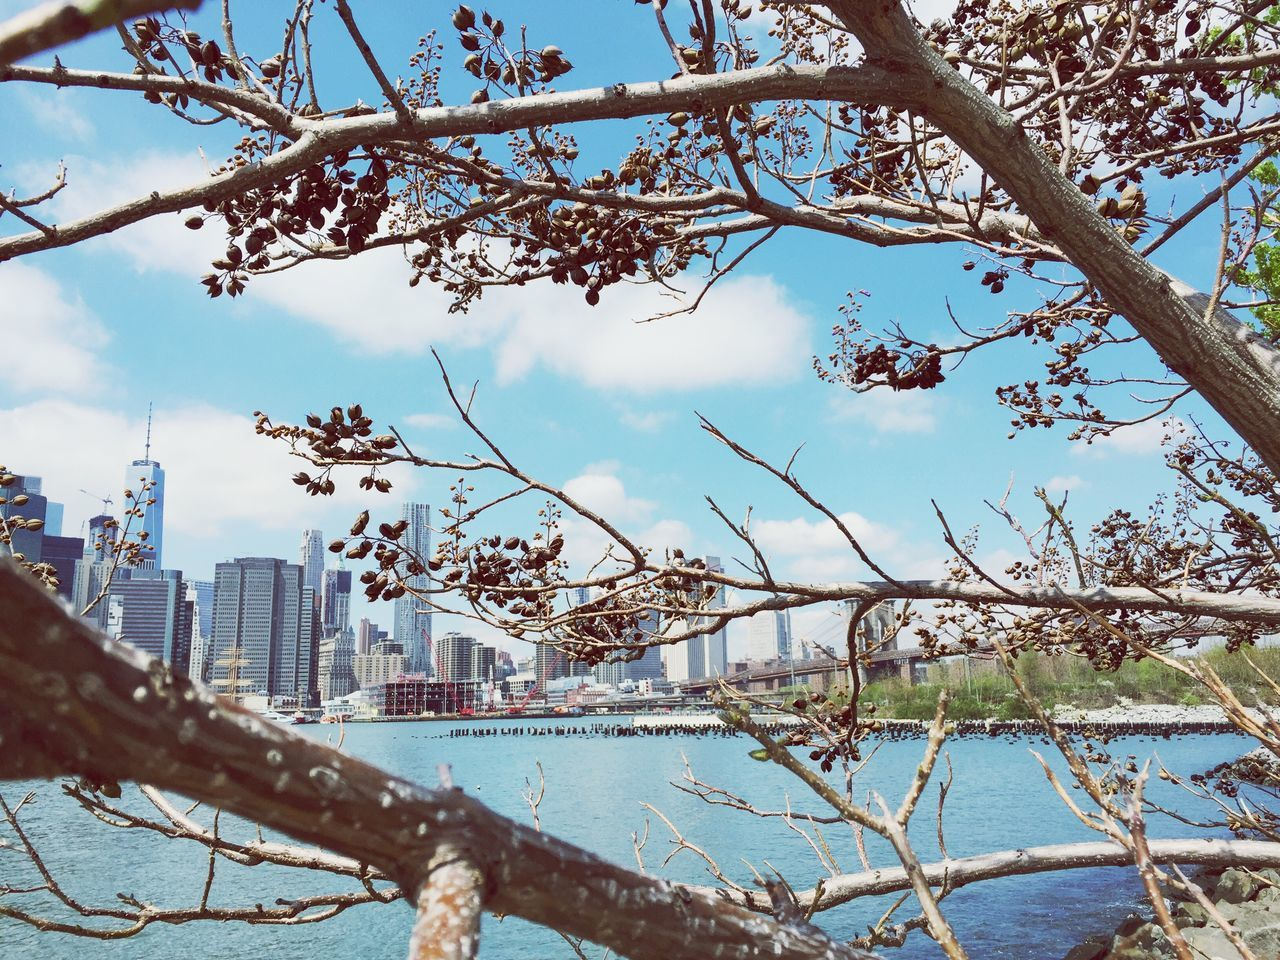 tree, growth, branch, day, sky, nature, outdoors, city, no people, architecture, beauty in nature, cityscape, skyscraper, water, built structure, building exterior, bare tree, flower, freshness, close-up